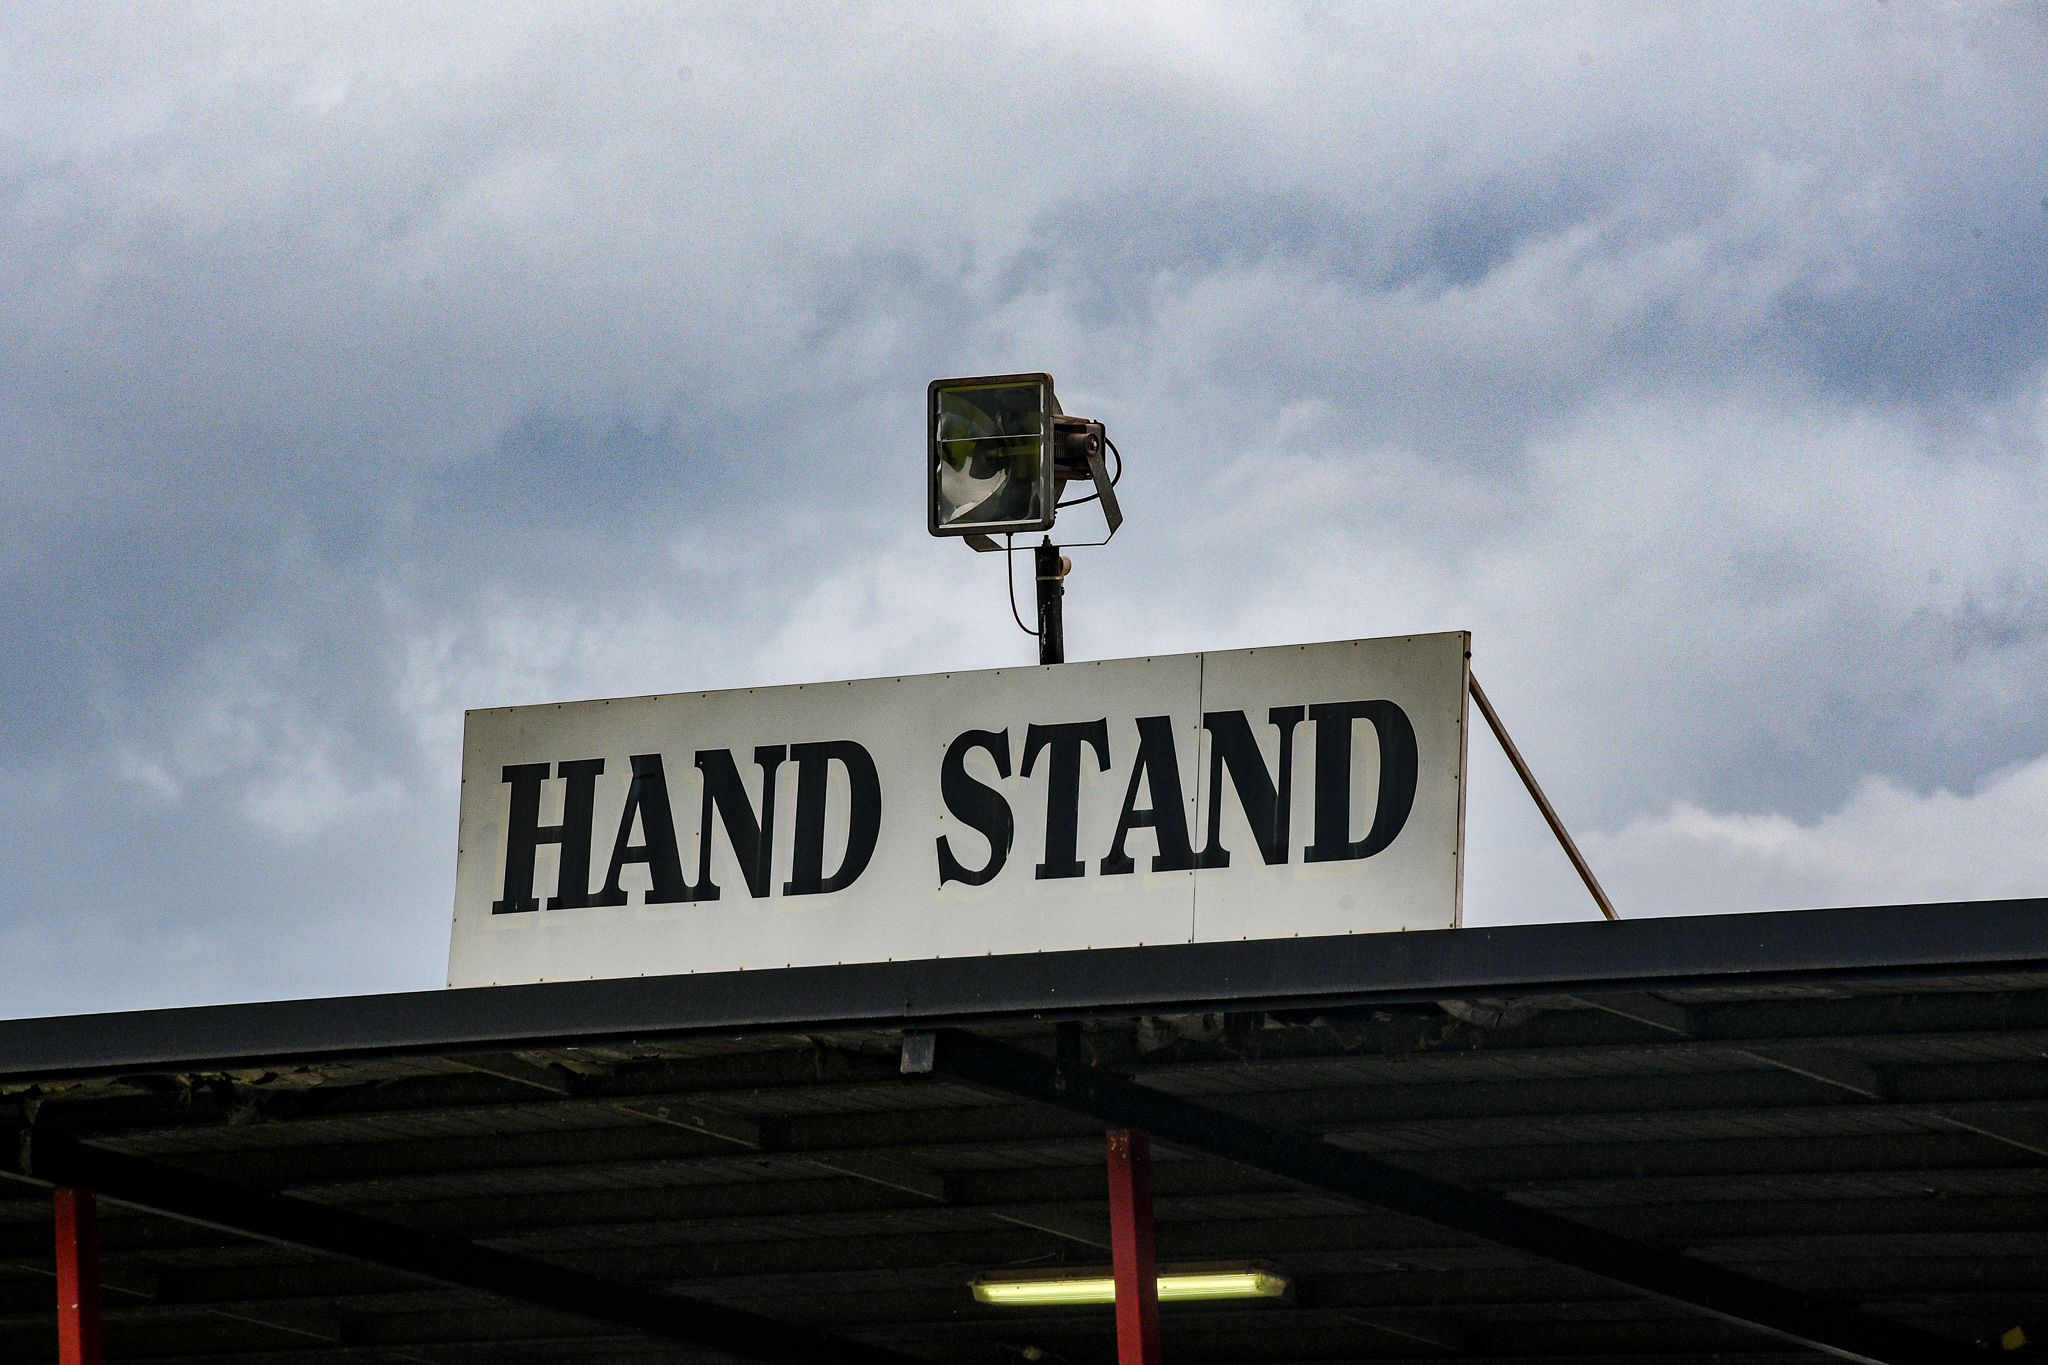 The Hand Stand at Norbuilt Oval, the home of the Southern Crocs. The Crocs were current Collingwood coach Nathan Buckley's first senior club.Tiwi Bombers v Southern Crocs, NTFL round 14, January 19, 2019.